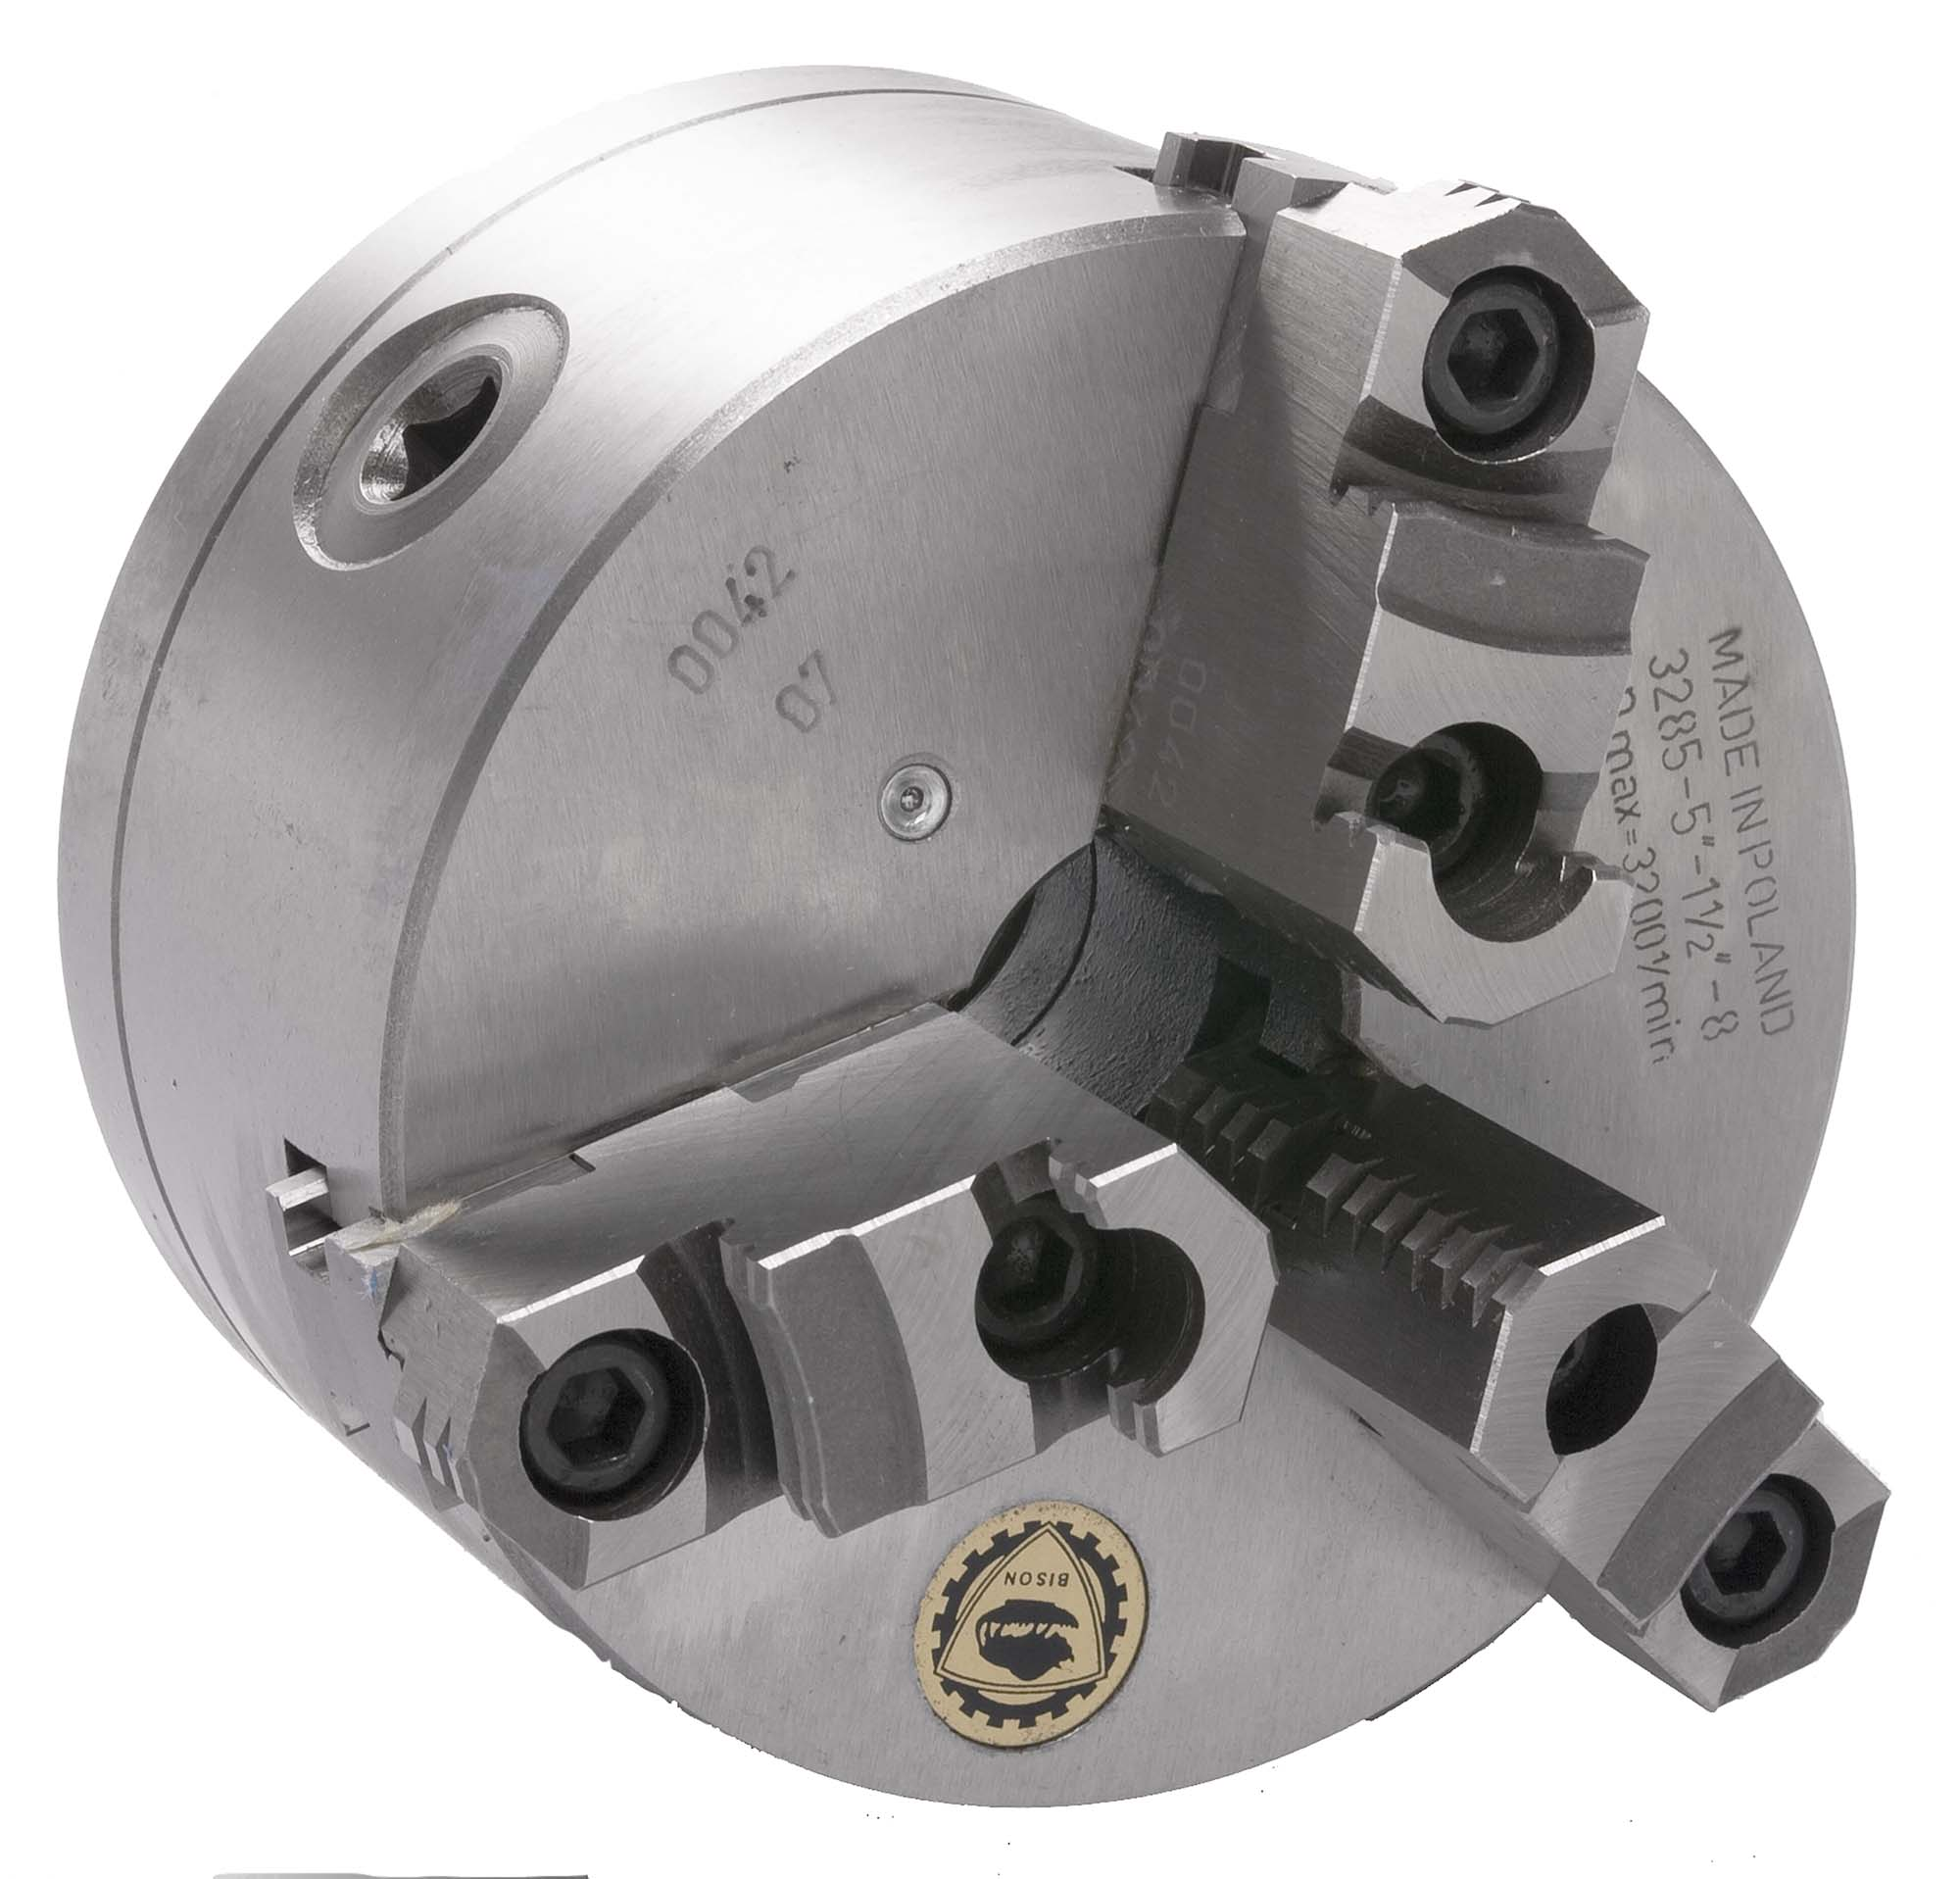 """Bison 7-805-0852 8"""" 3-Jaw Universal Lathe Chuck with 1 1/2-8 Threaded Back"""